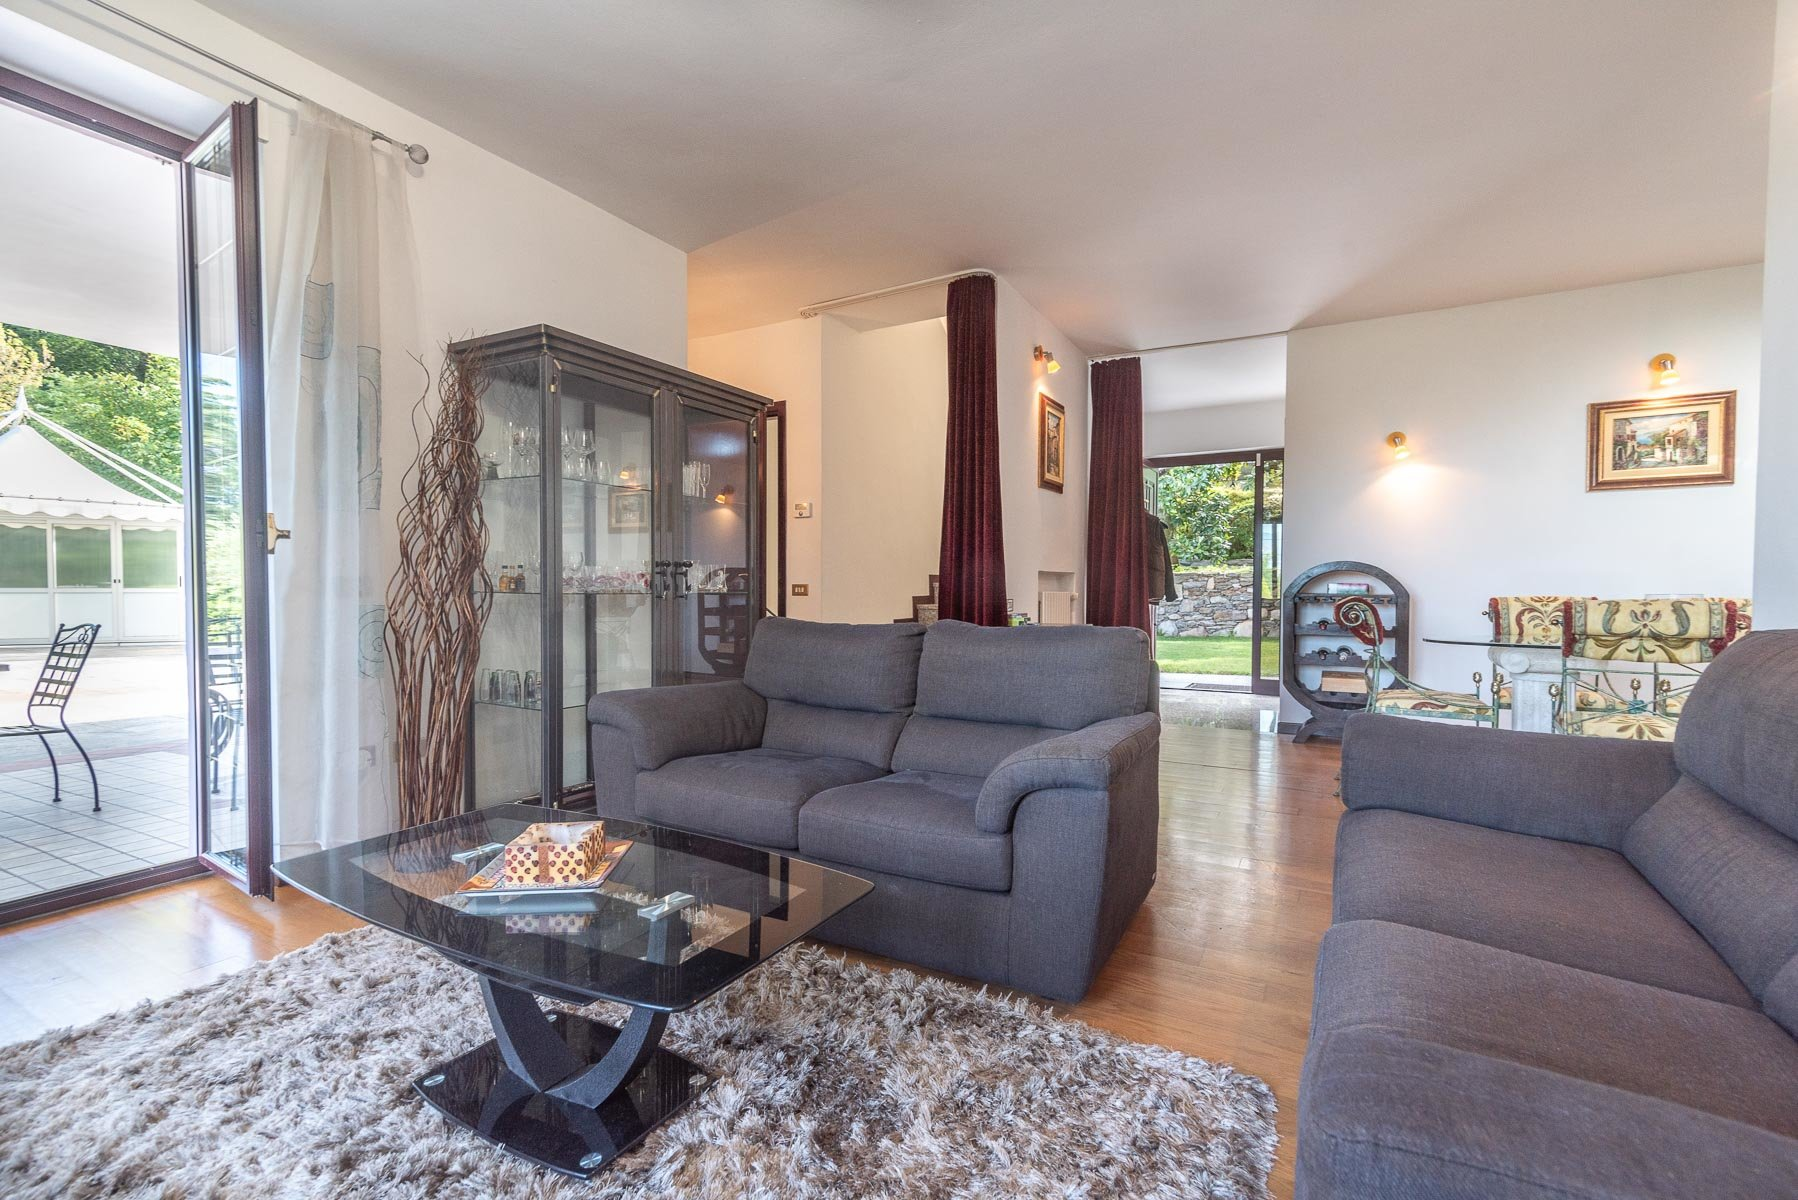 Modern villa near Stresa centre - living room